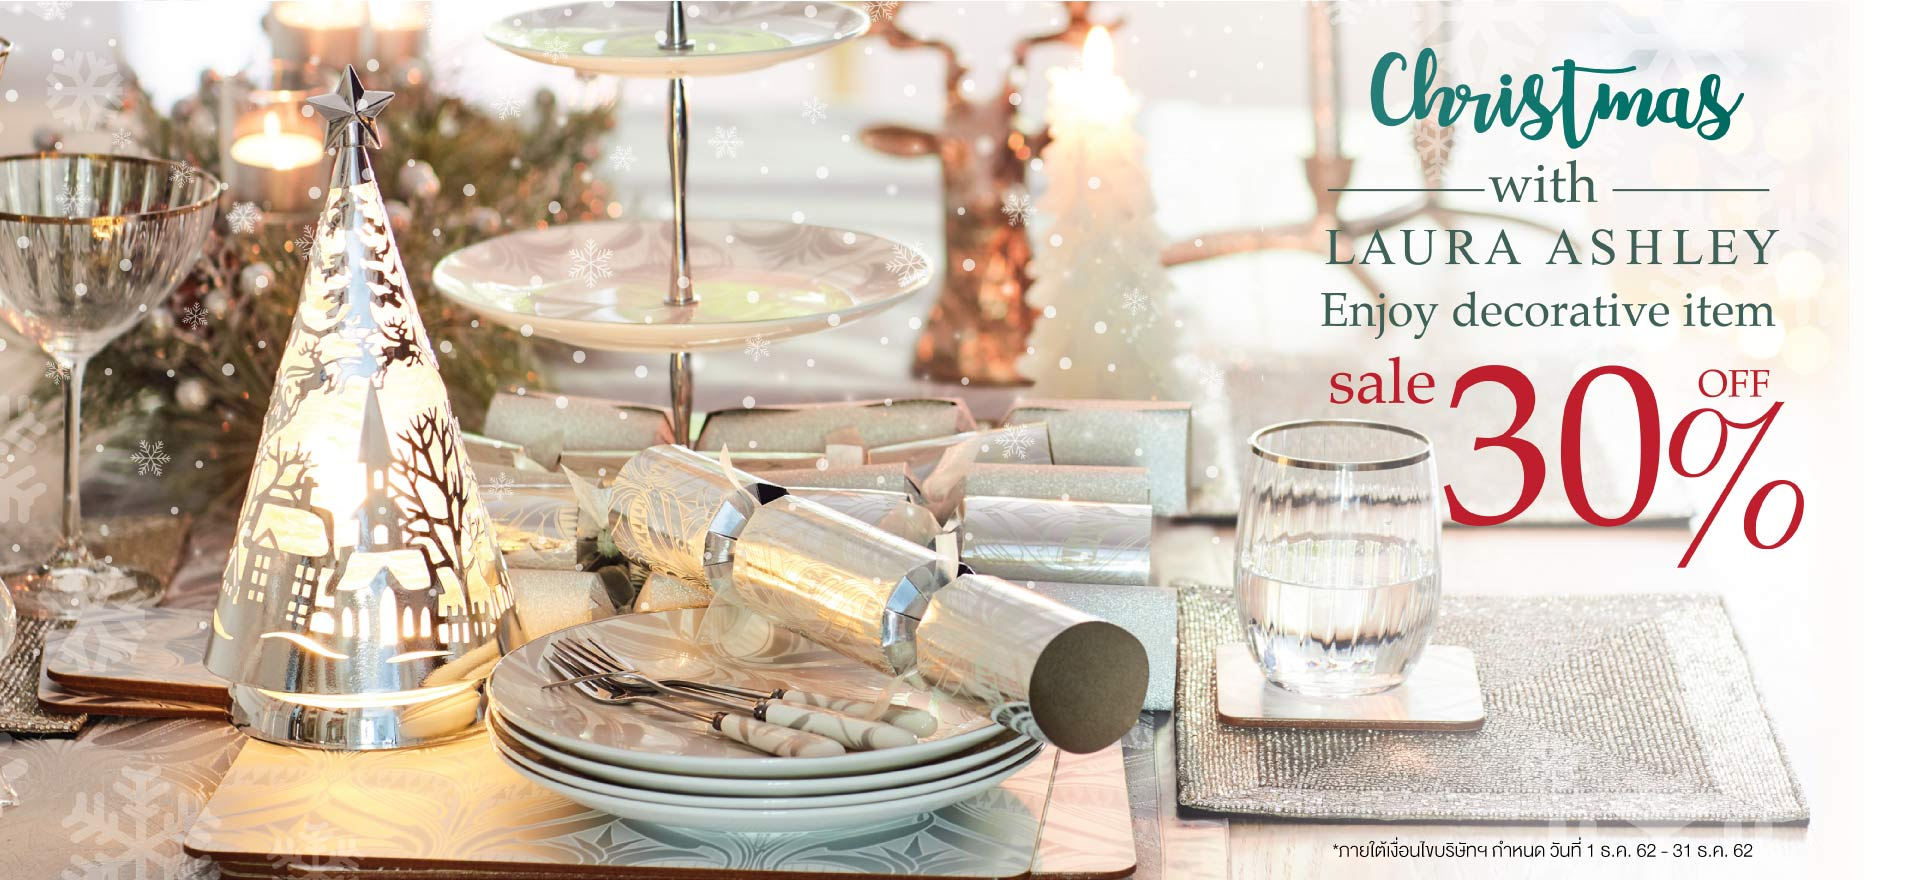 Christmas with LAURA ASHLEY Enjoy Decorative Items Sale 30%